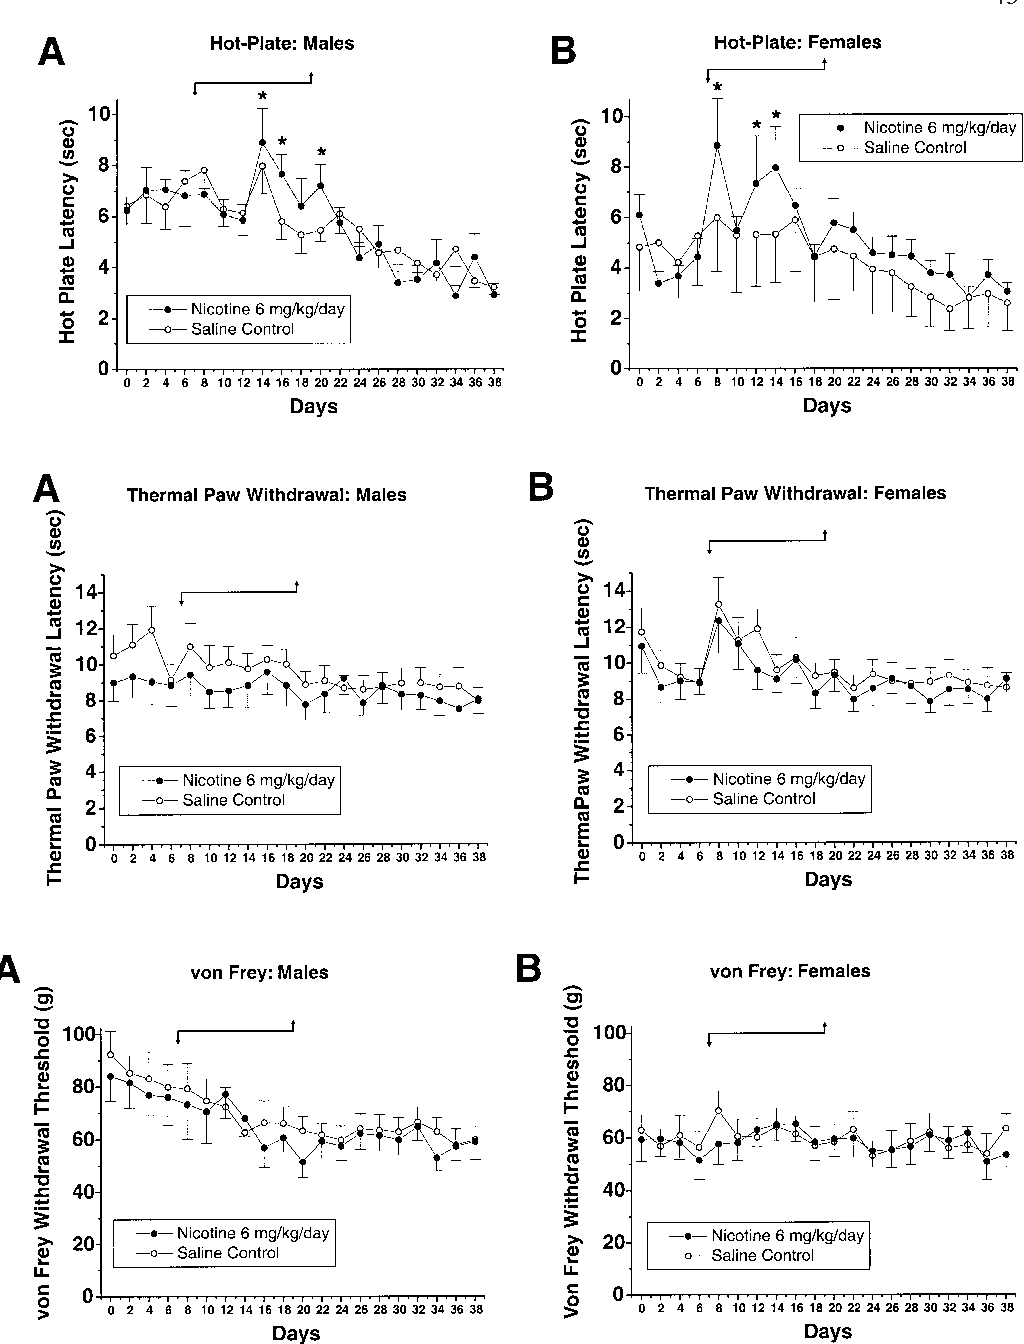 Fig. 3A, B Effects of chronic infusion of nicotine or saline on hot-plate latency in male and female rats (format as in Fig. 1)